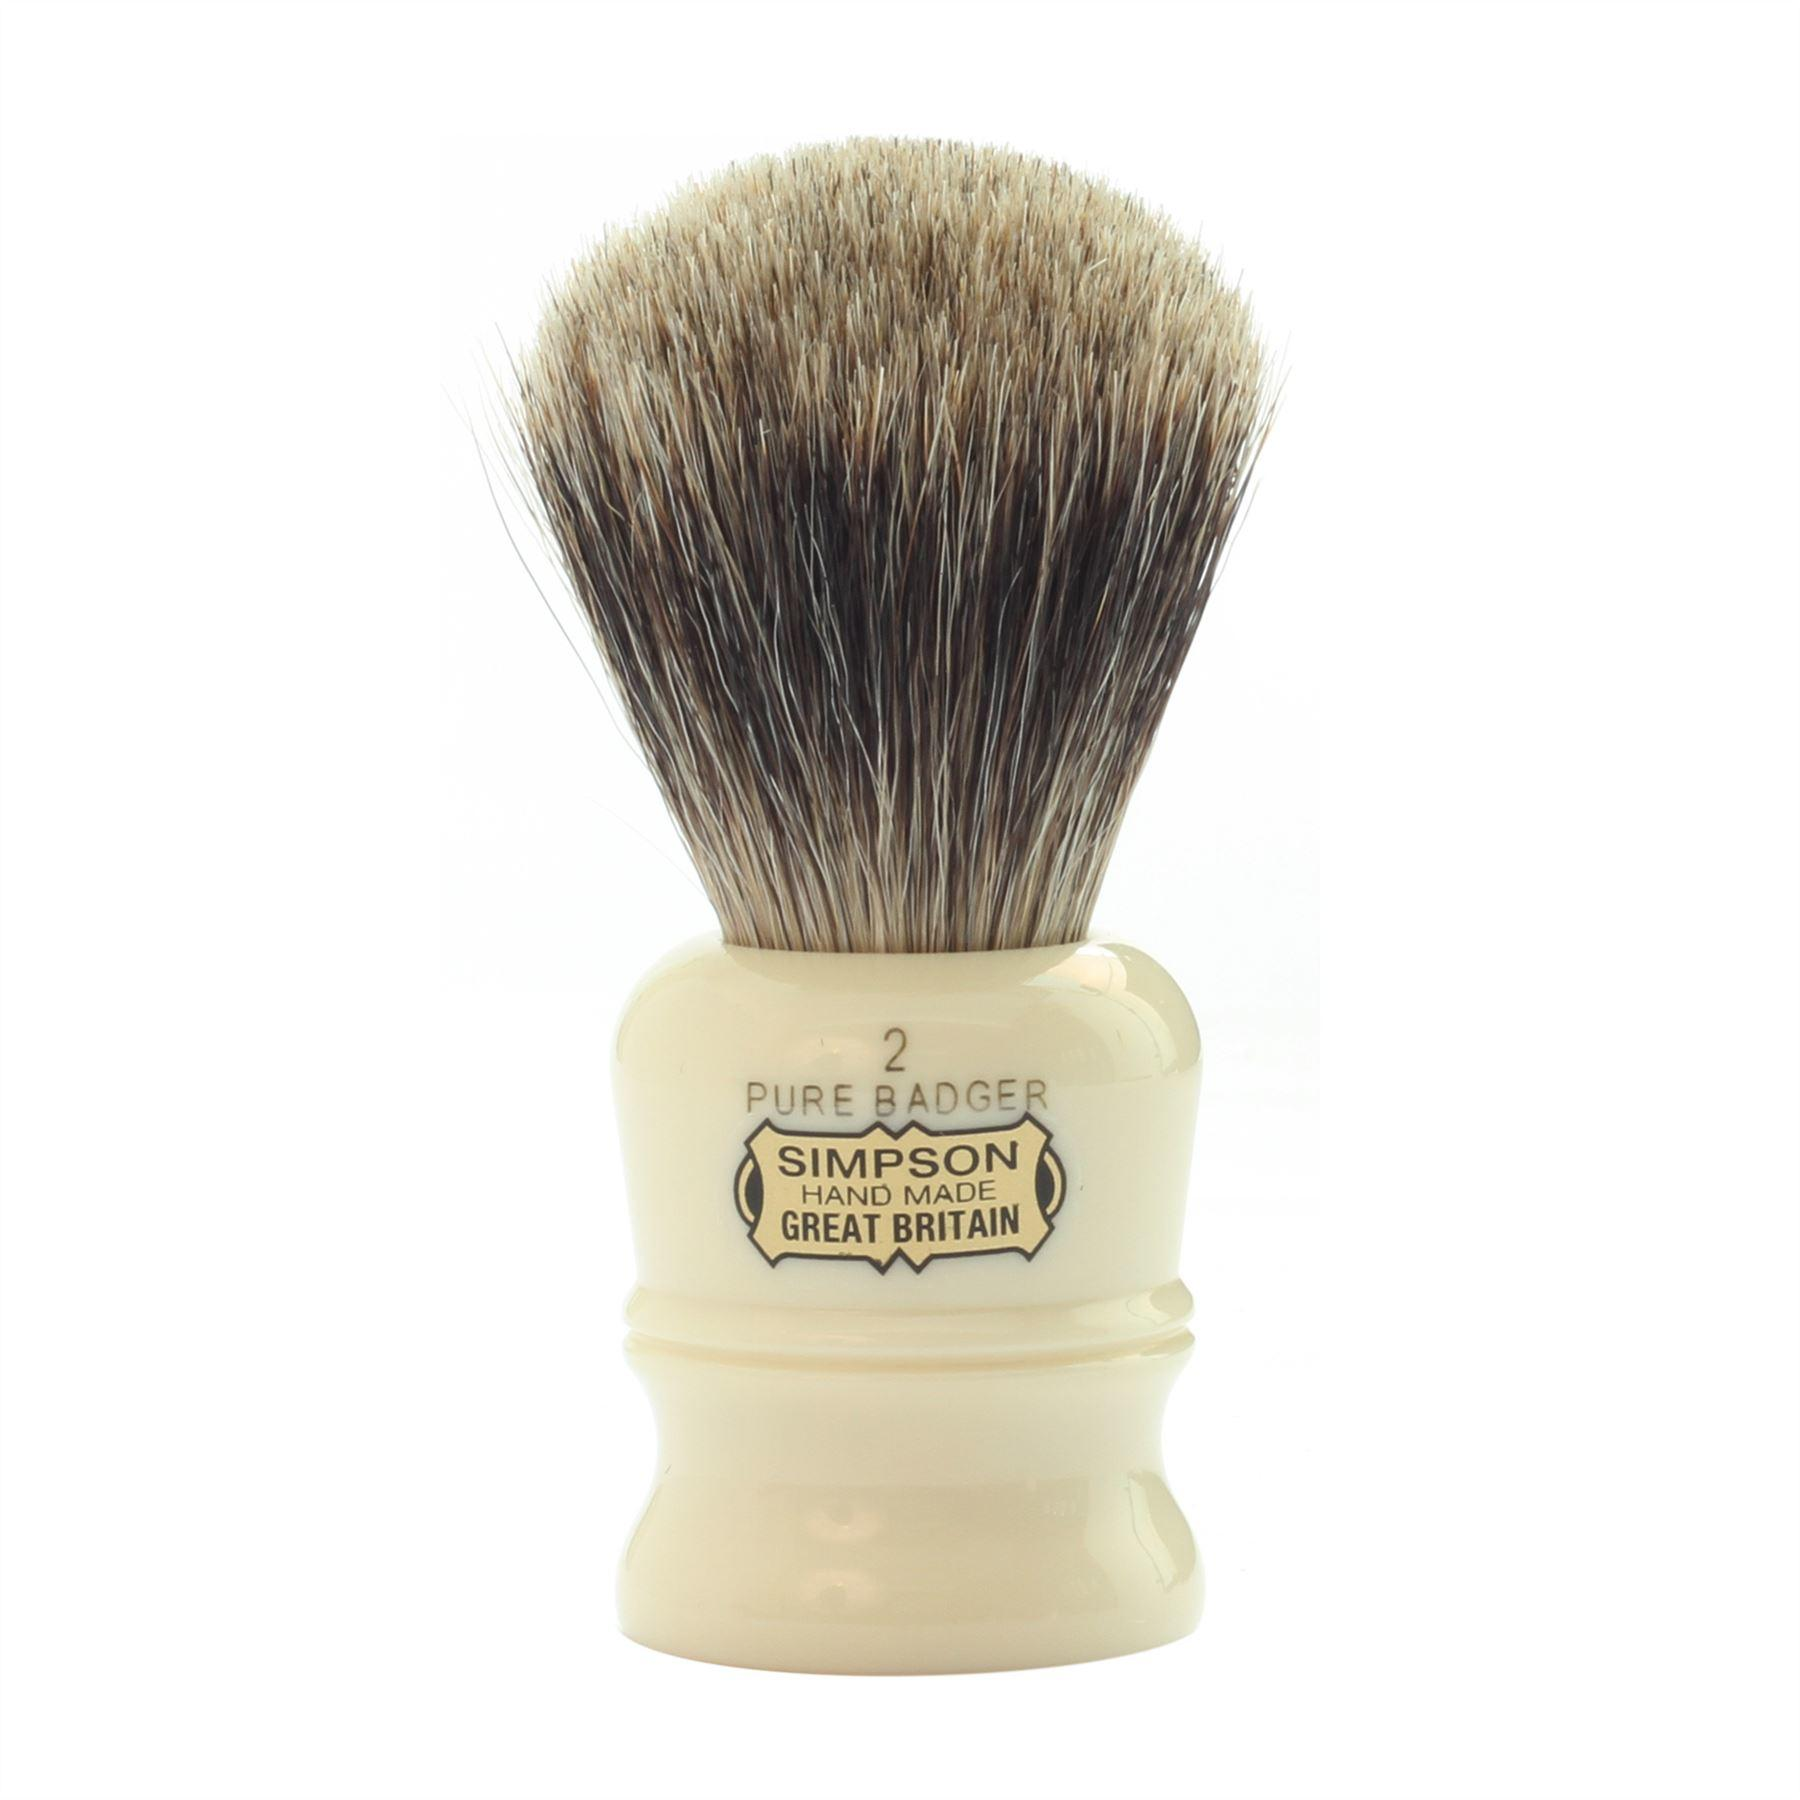 Simpsons Duke D2 Pure Badger Hair Shaving Brush